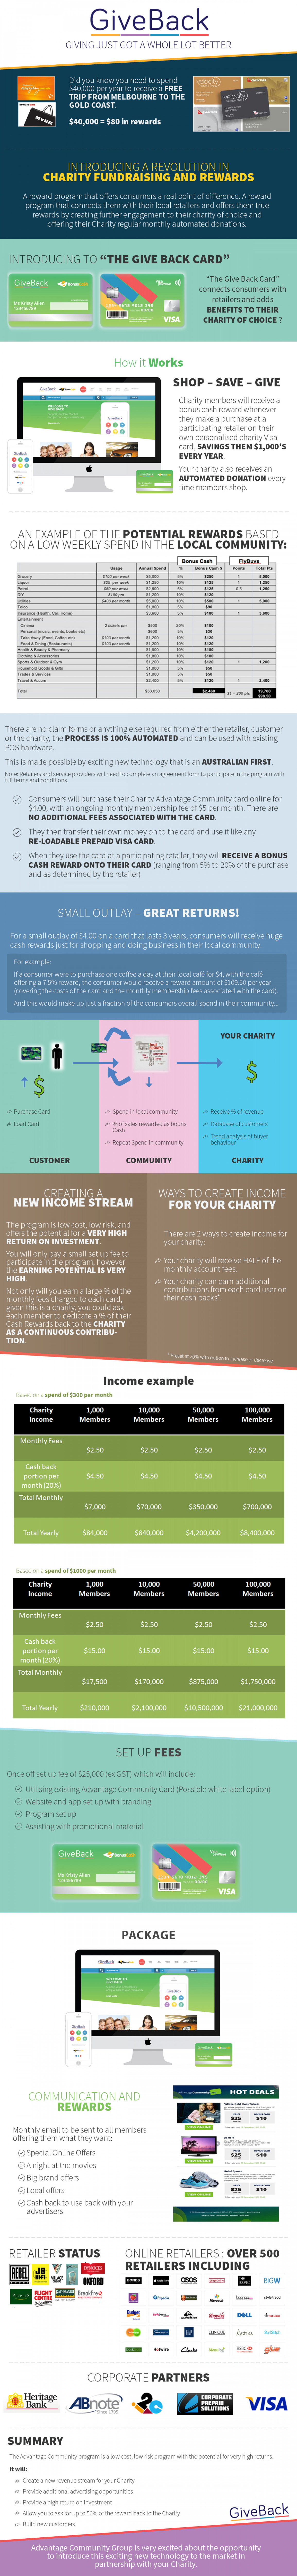 GiveBack Giving Just Got a Whole lot Better Infographic